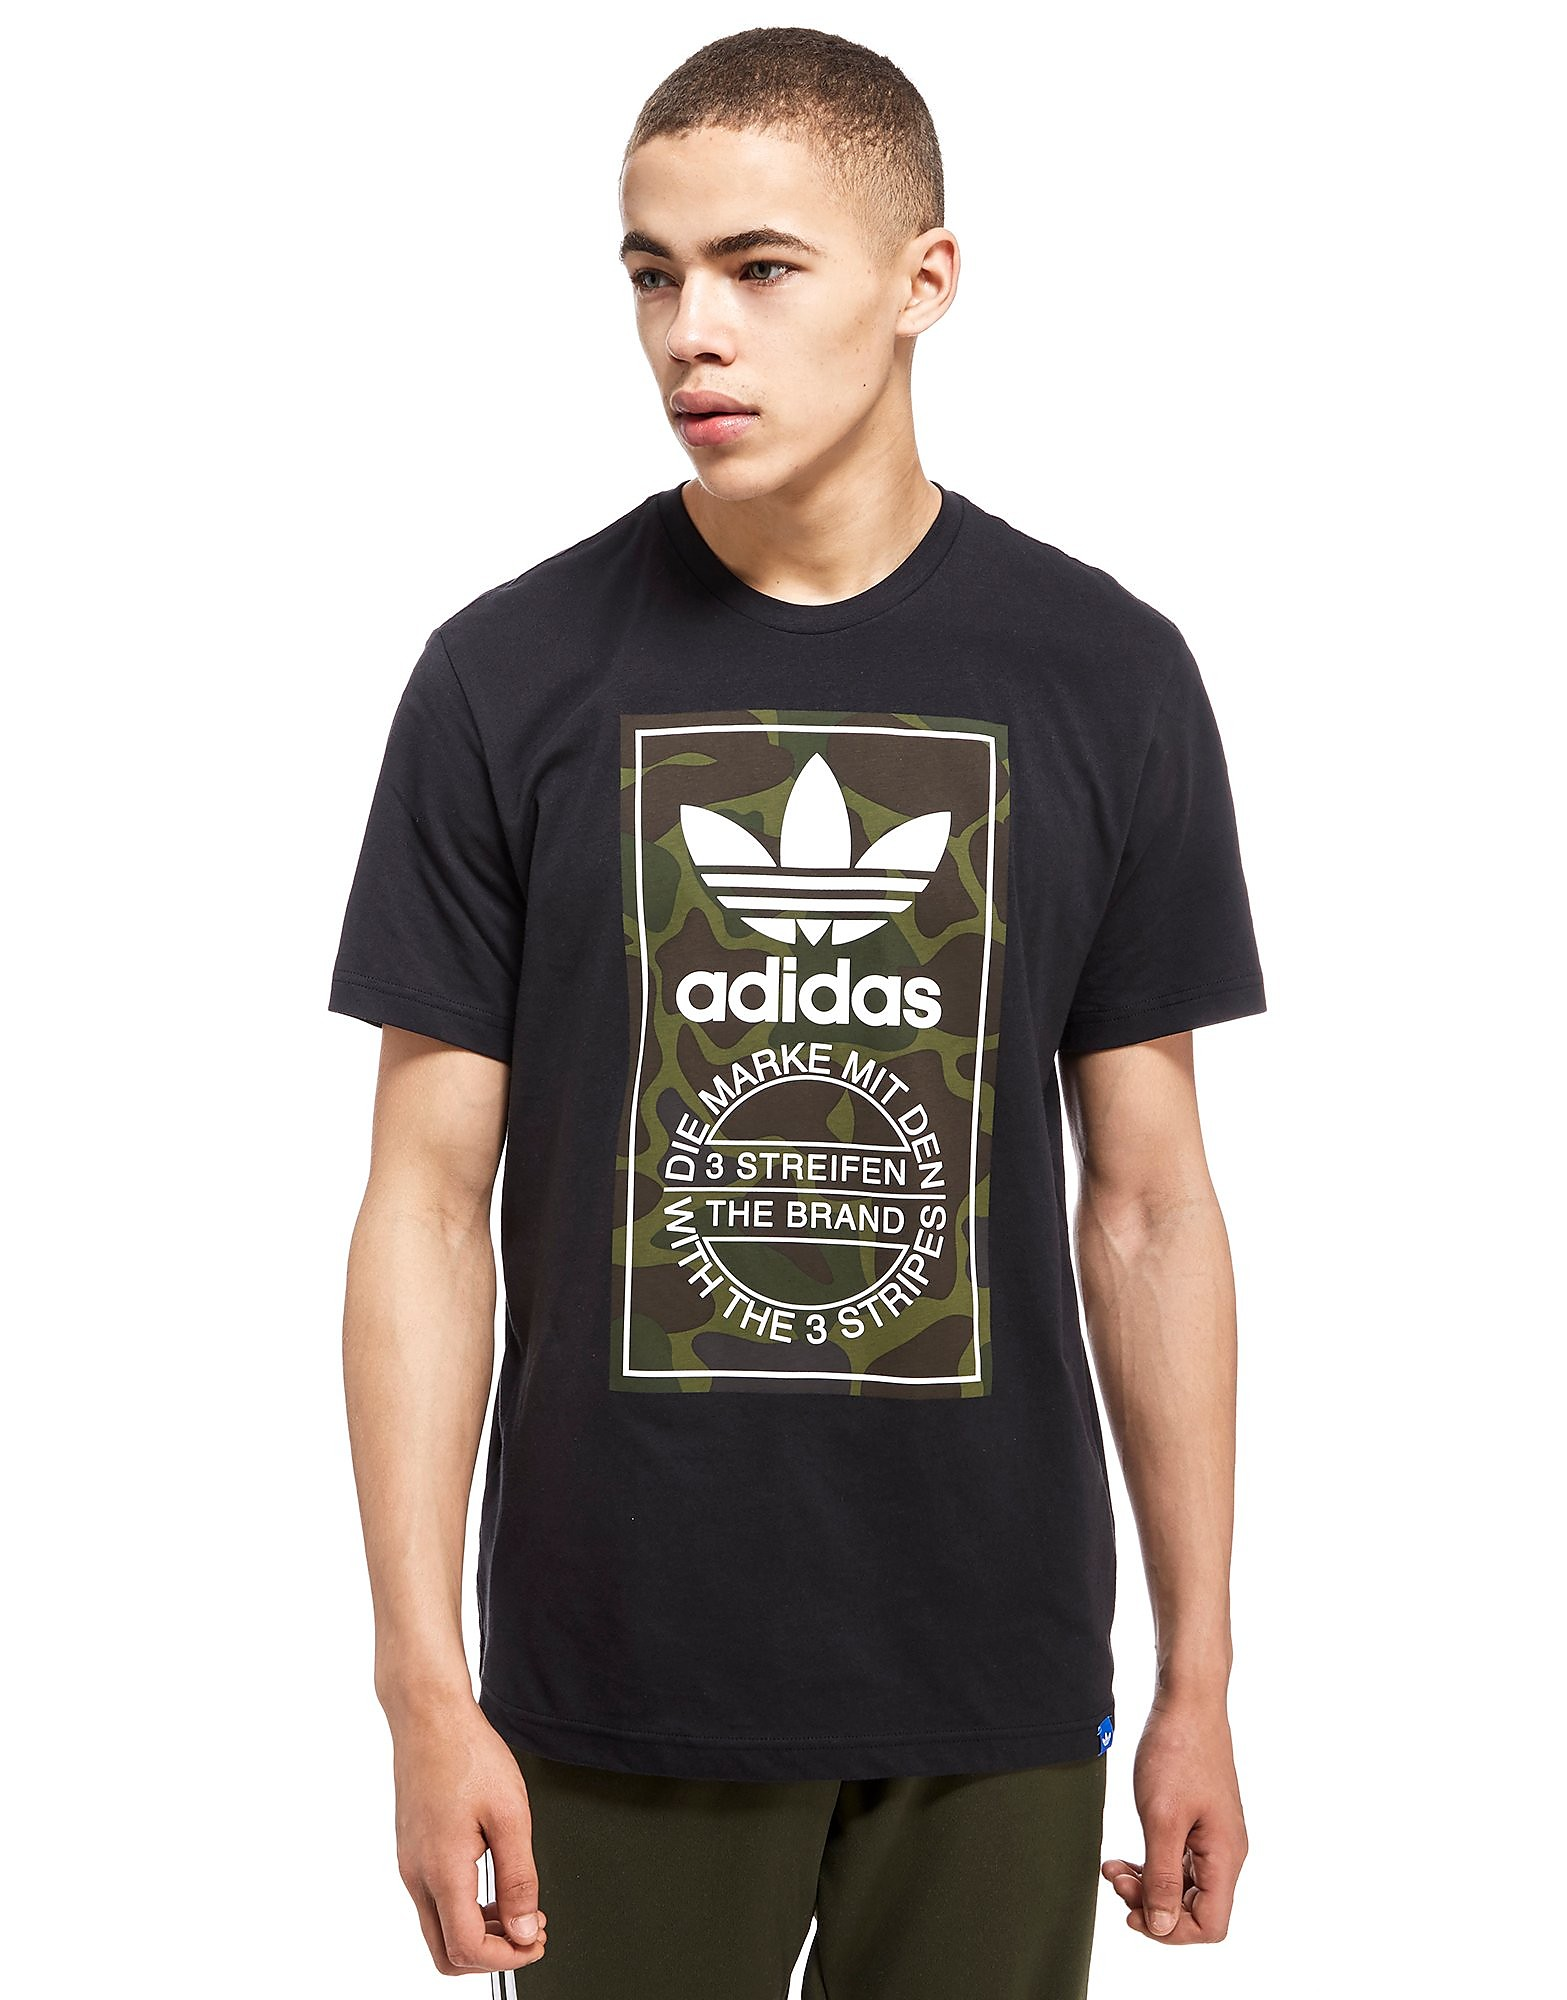 adidas Originals Label T-Shirt